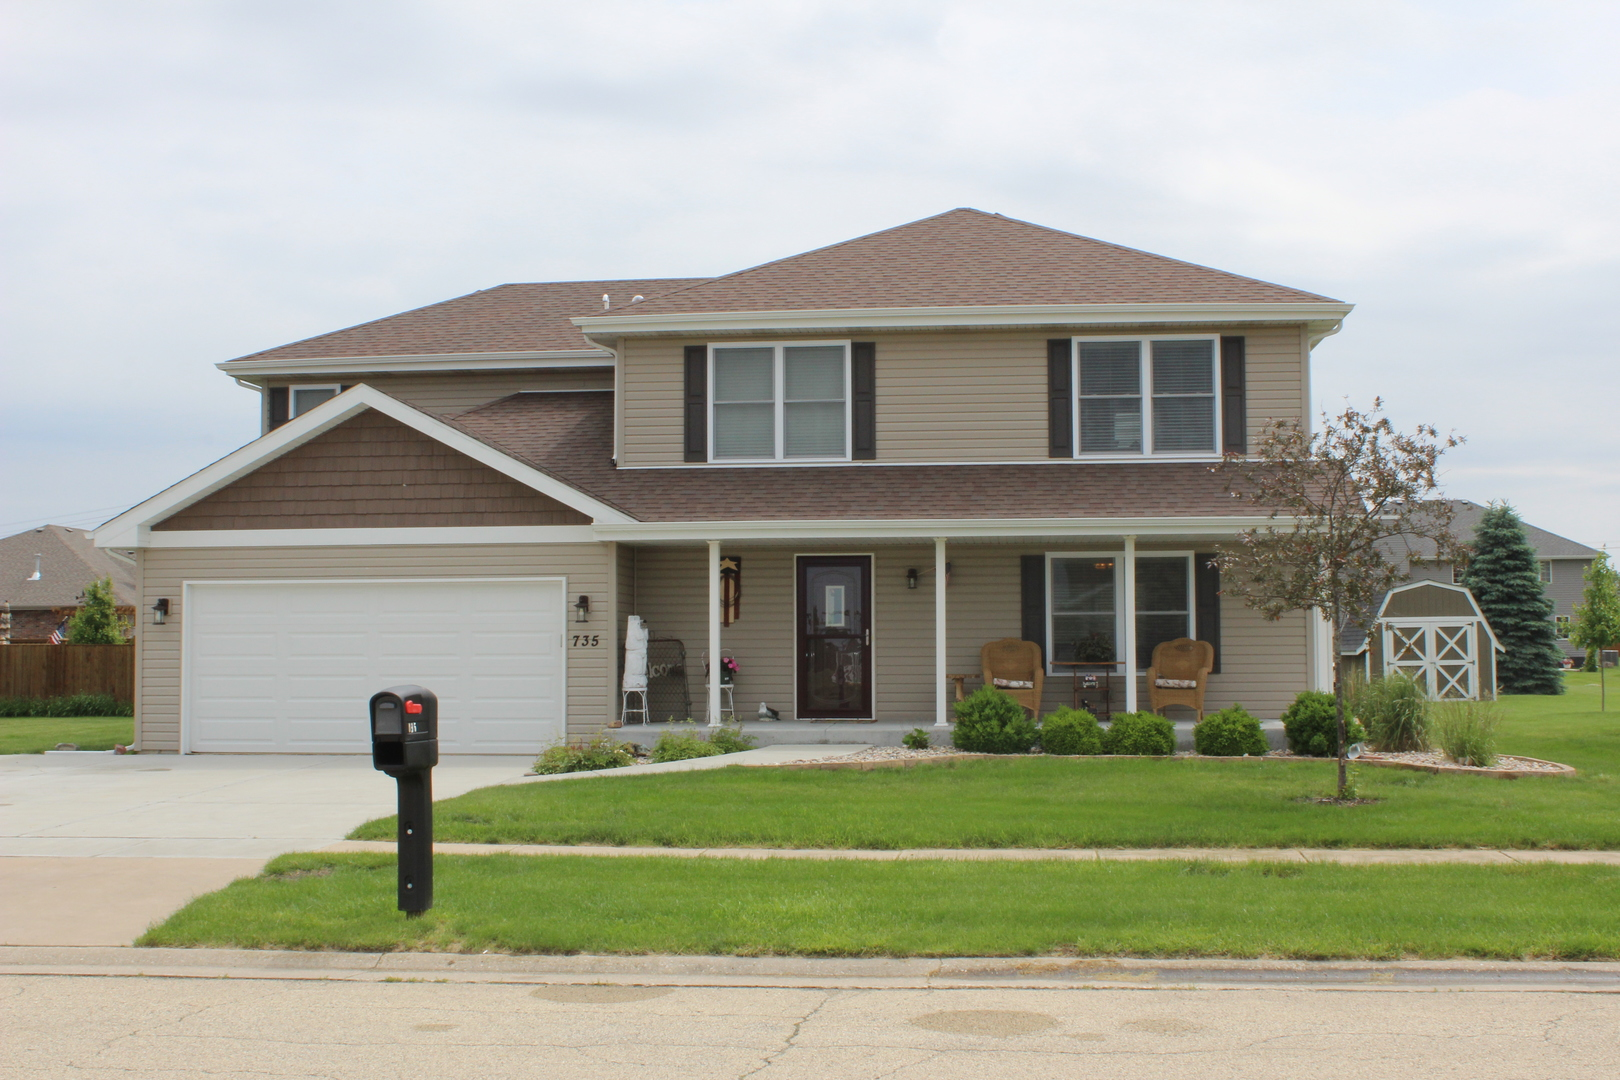 735 Pheasant, Coal City, Illinois, 60416